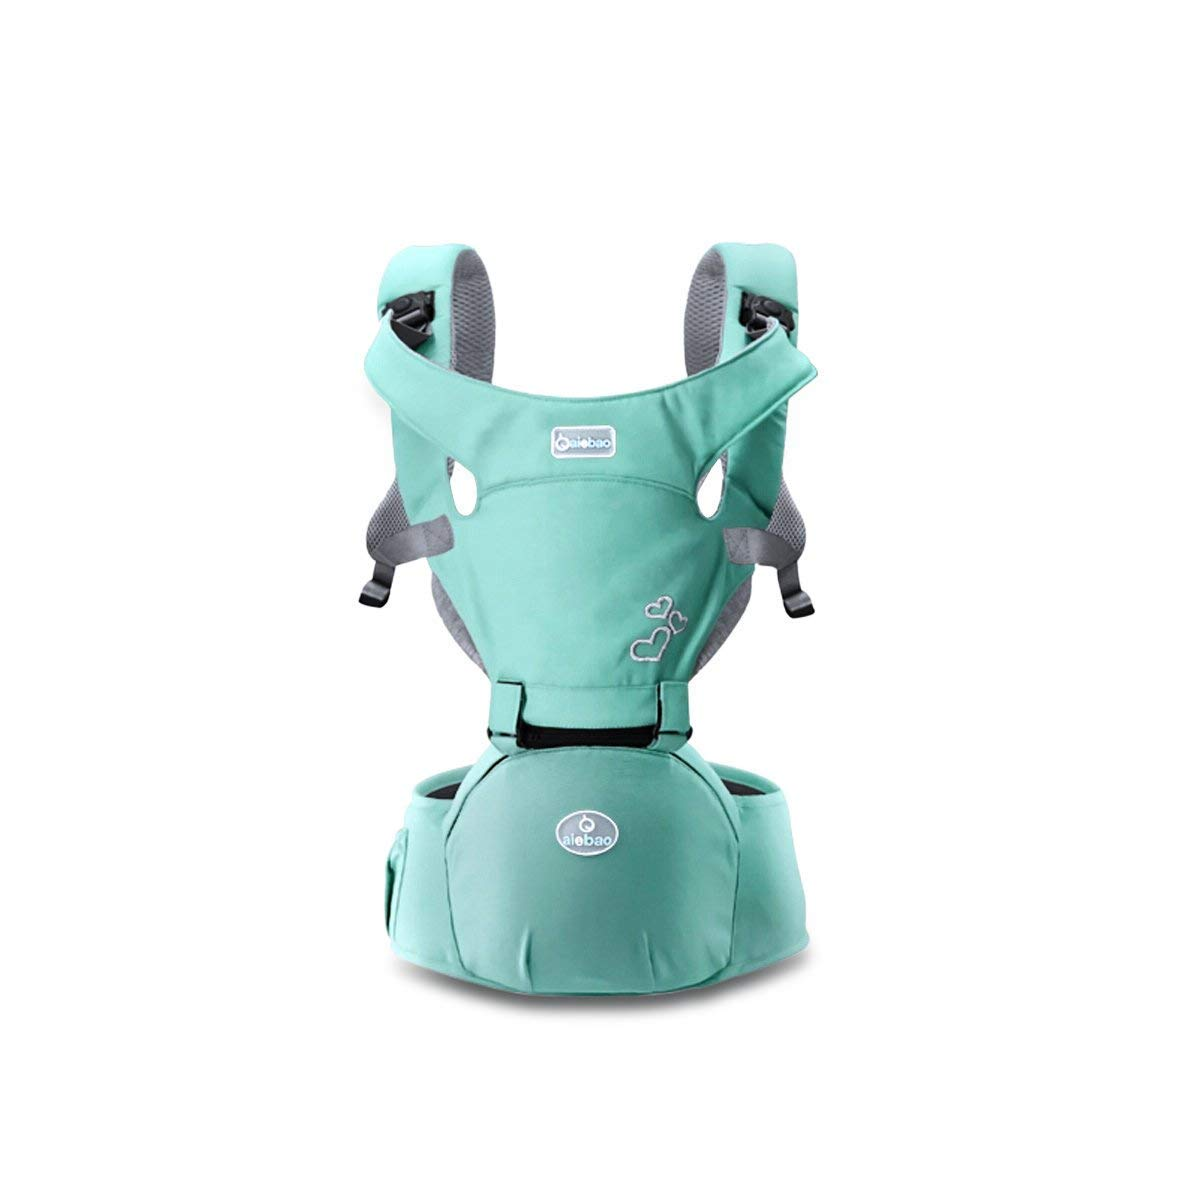 Dfrg Ergonómico Transpirable Infantil Portabebé,Multifunción Adjustable Portabebés,Lightgreen Multifunción Adjustable Portabebés dfgbd